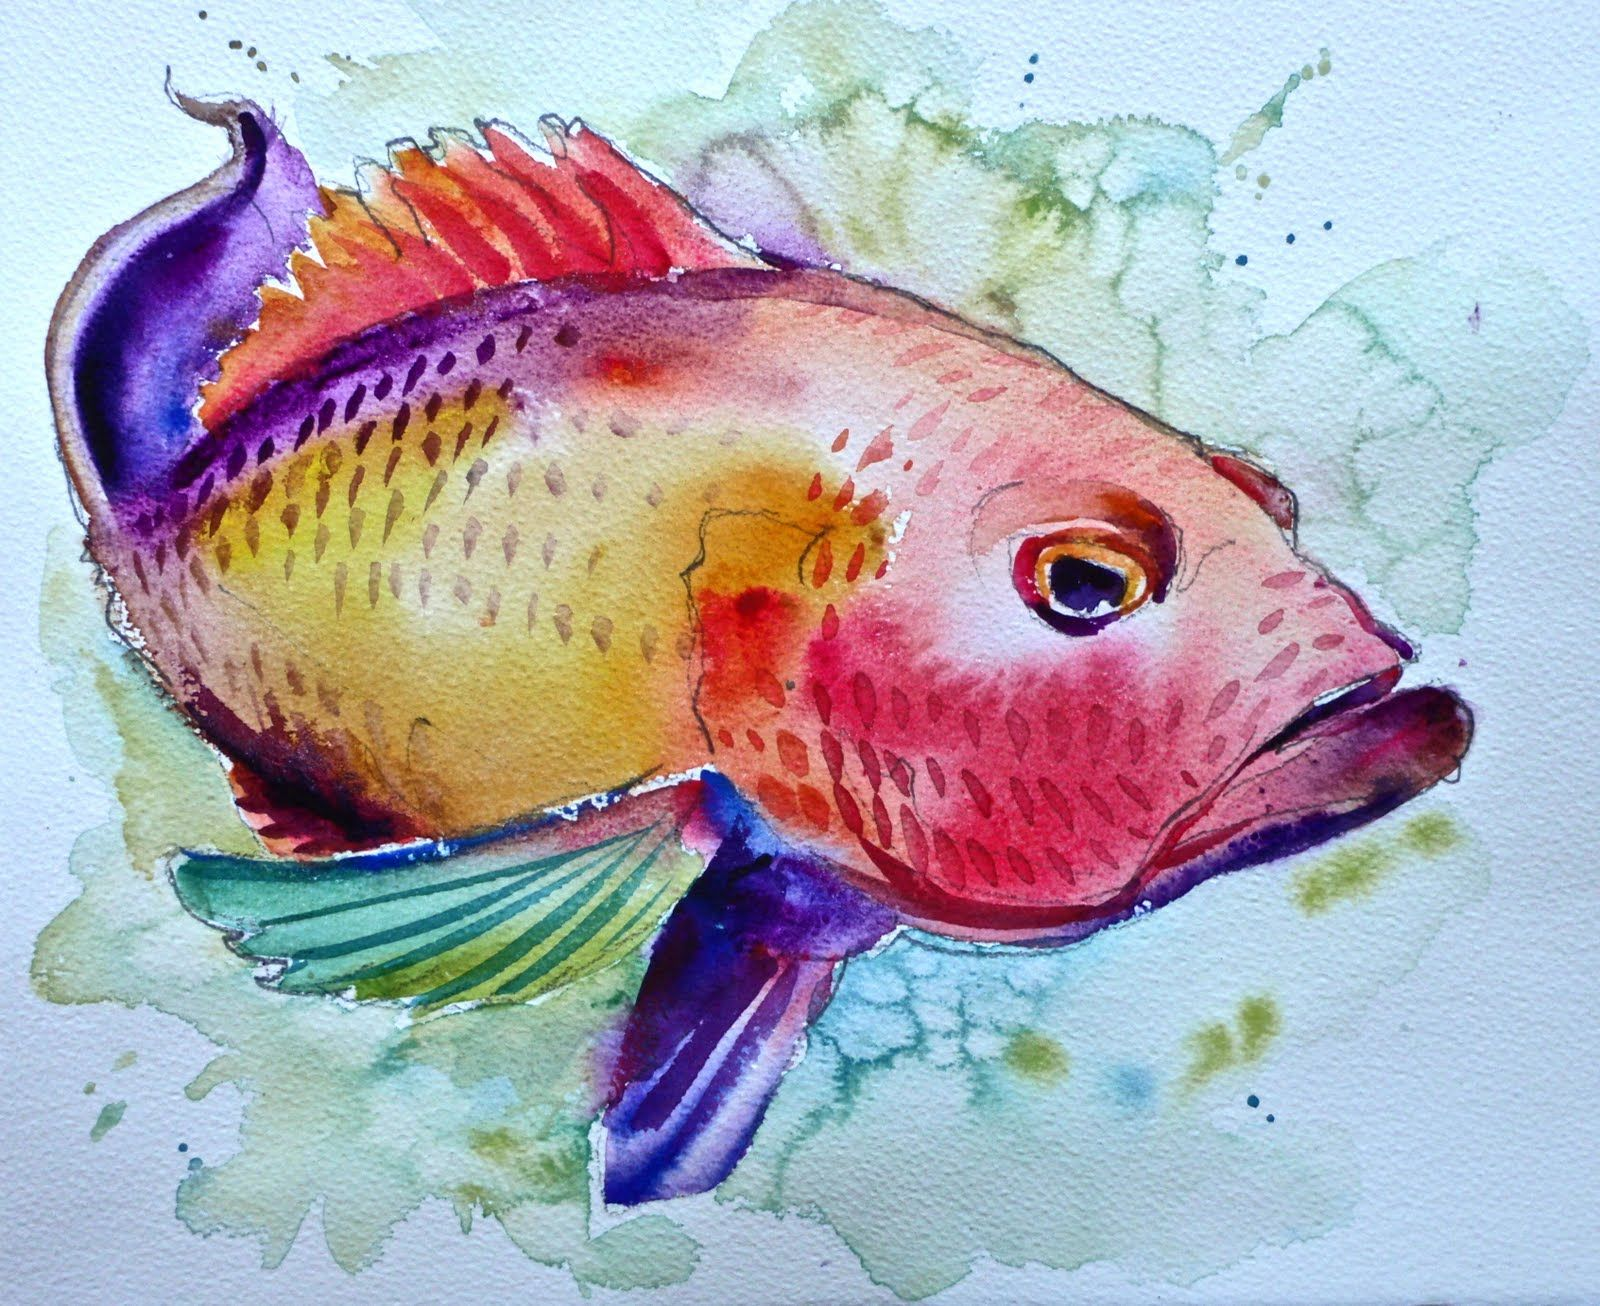 Watercolor artist websites - Find This Pin And More On Watercolor Artists